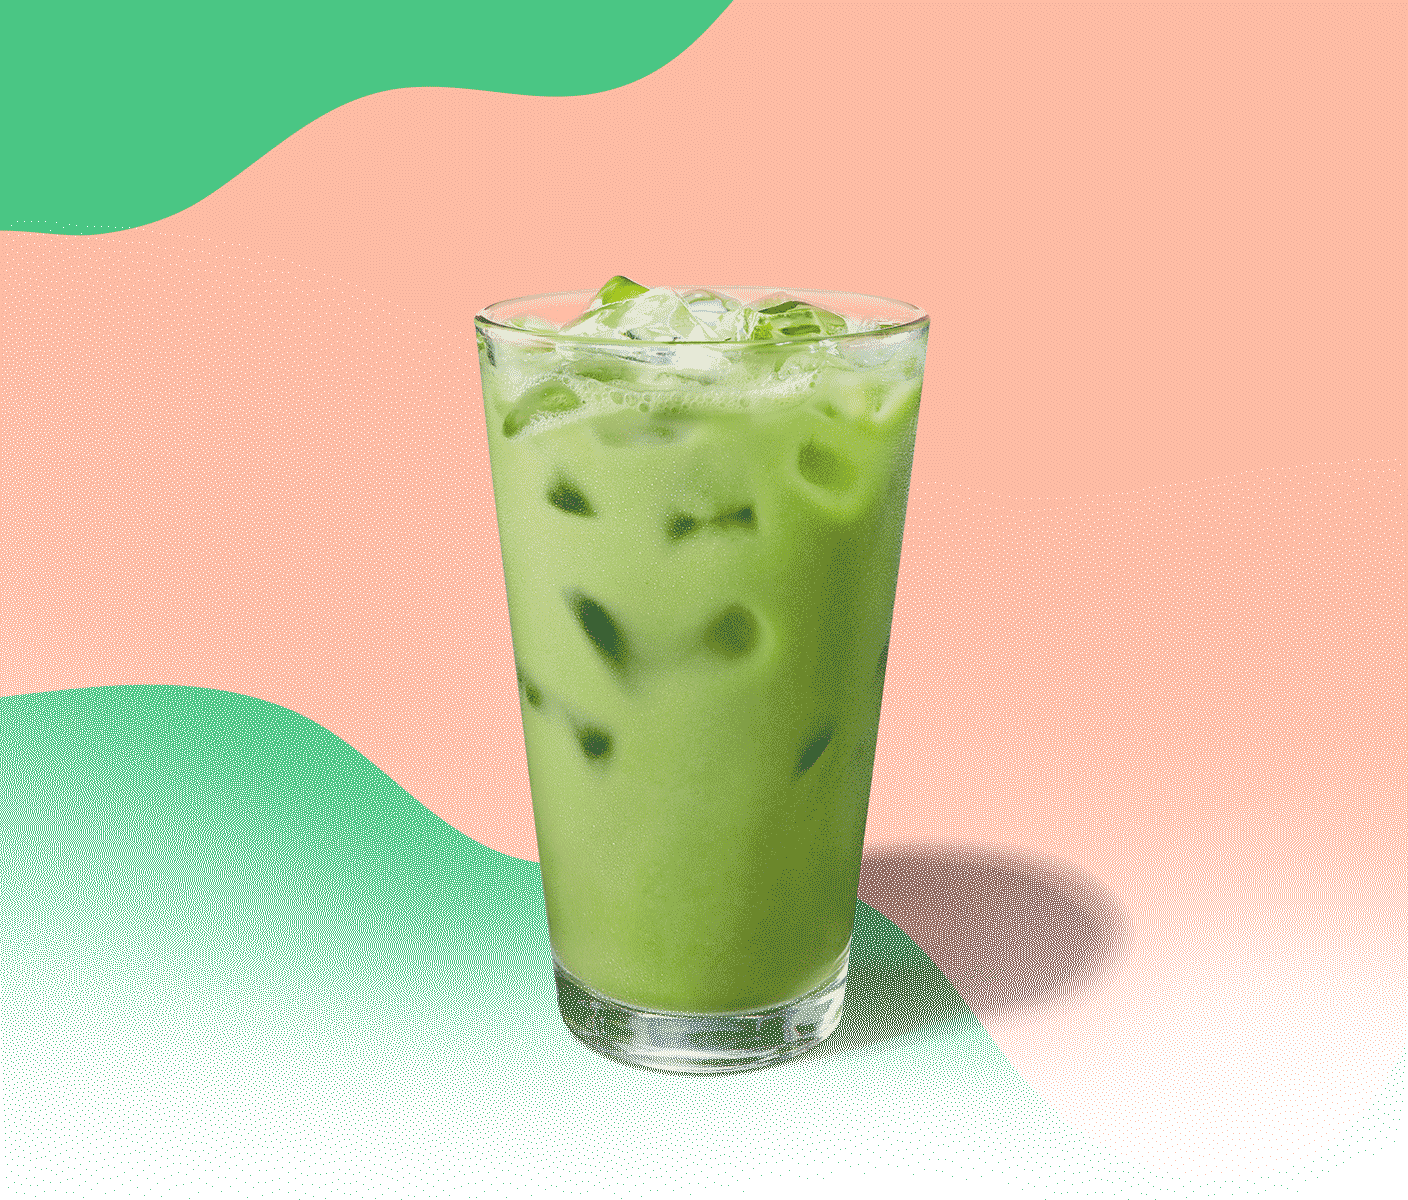 Green iced drink in a tall glass against a colorful background